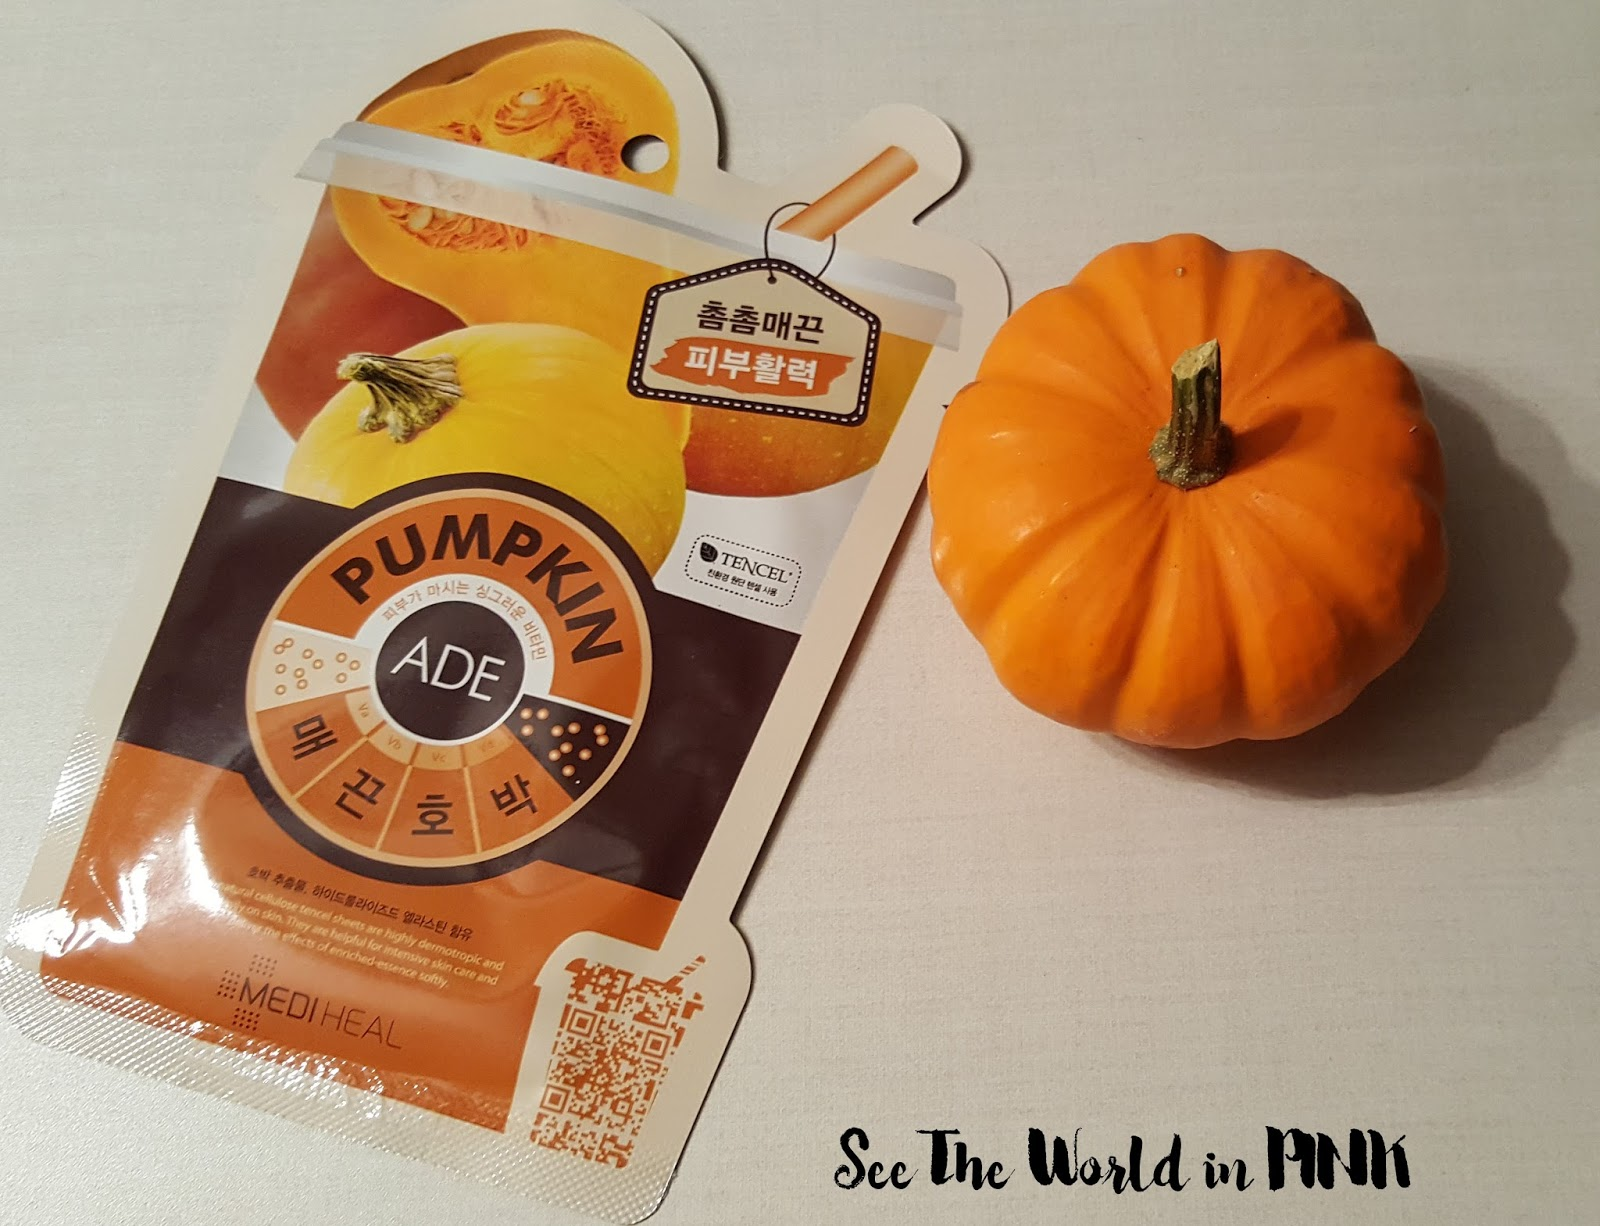 Mask Wednesday - Mediheal Pumpkin Ade Mask